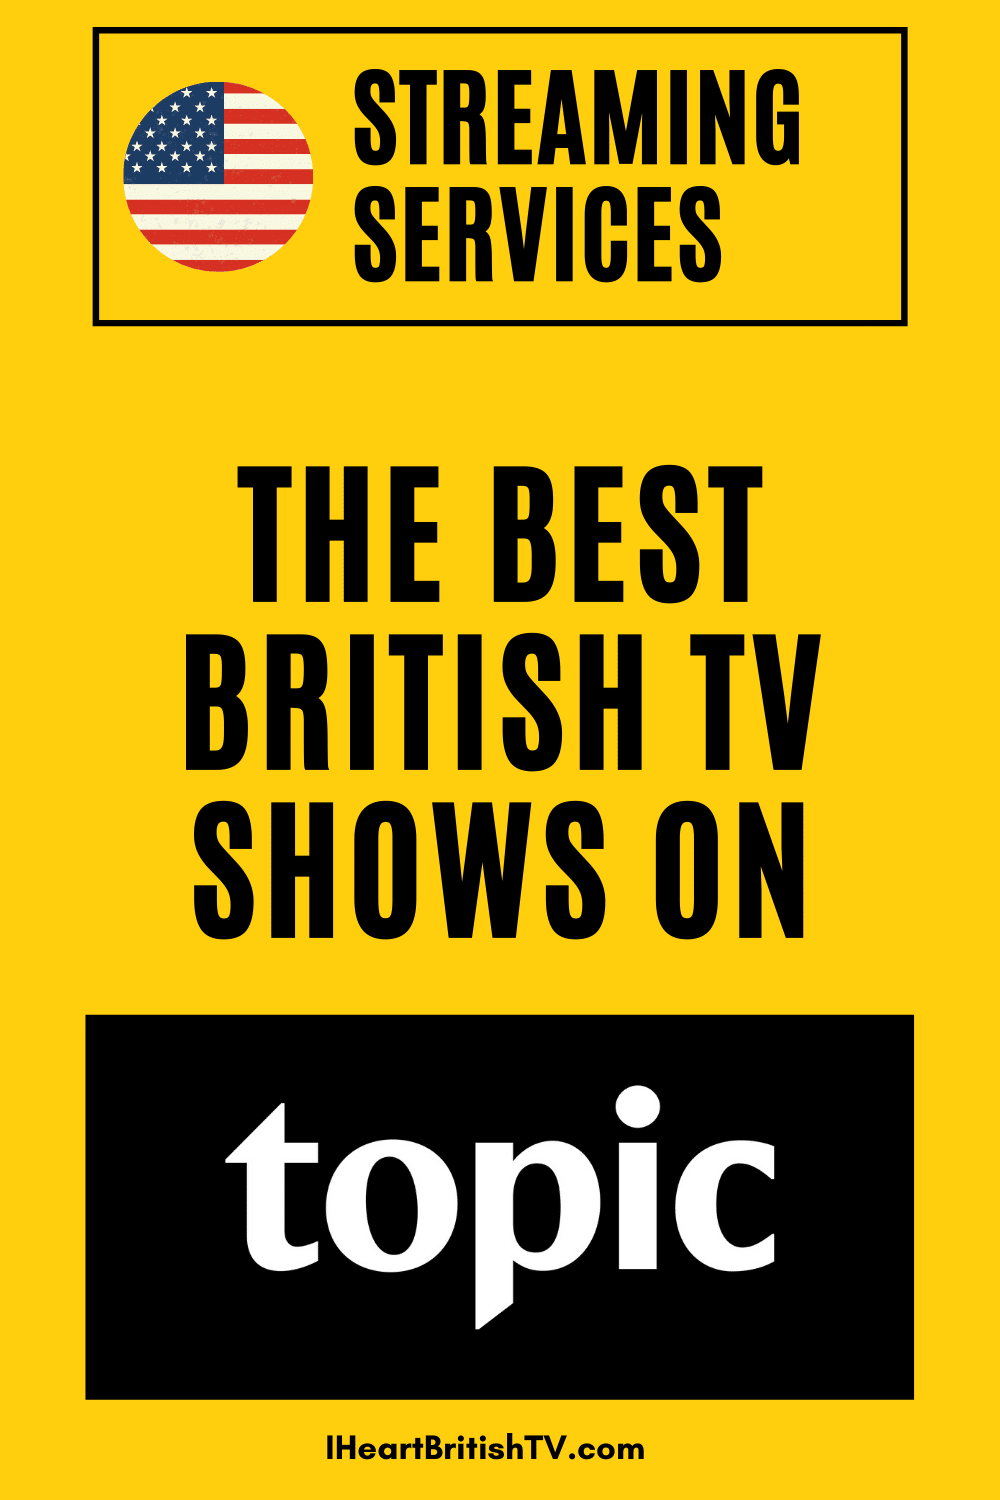 British TV Shows & Movies on Topic: A New Streaming Service for Fans of International TV 15